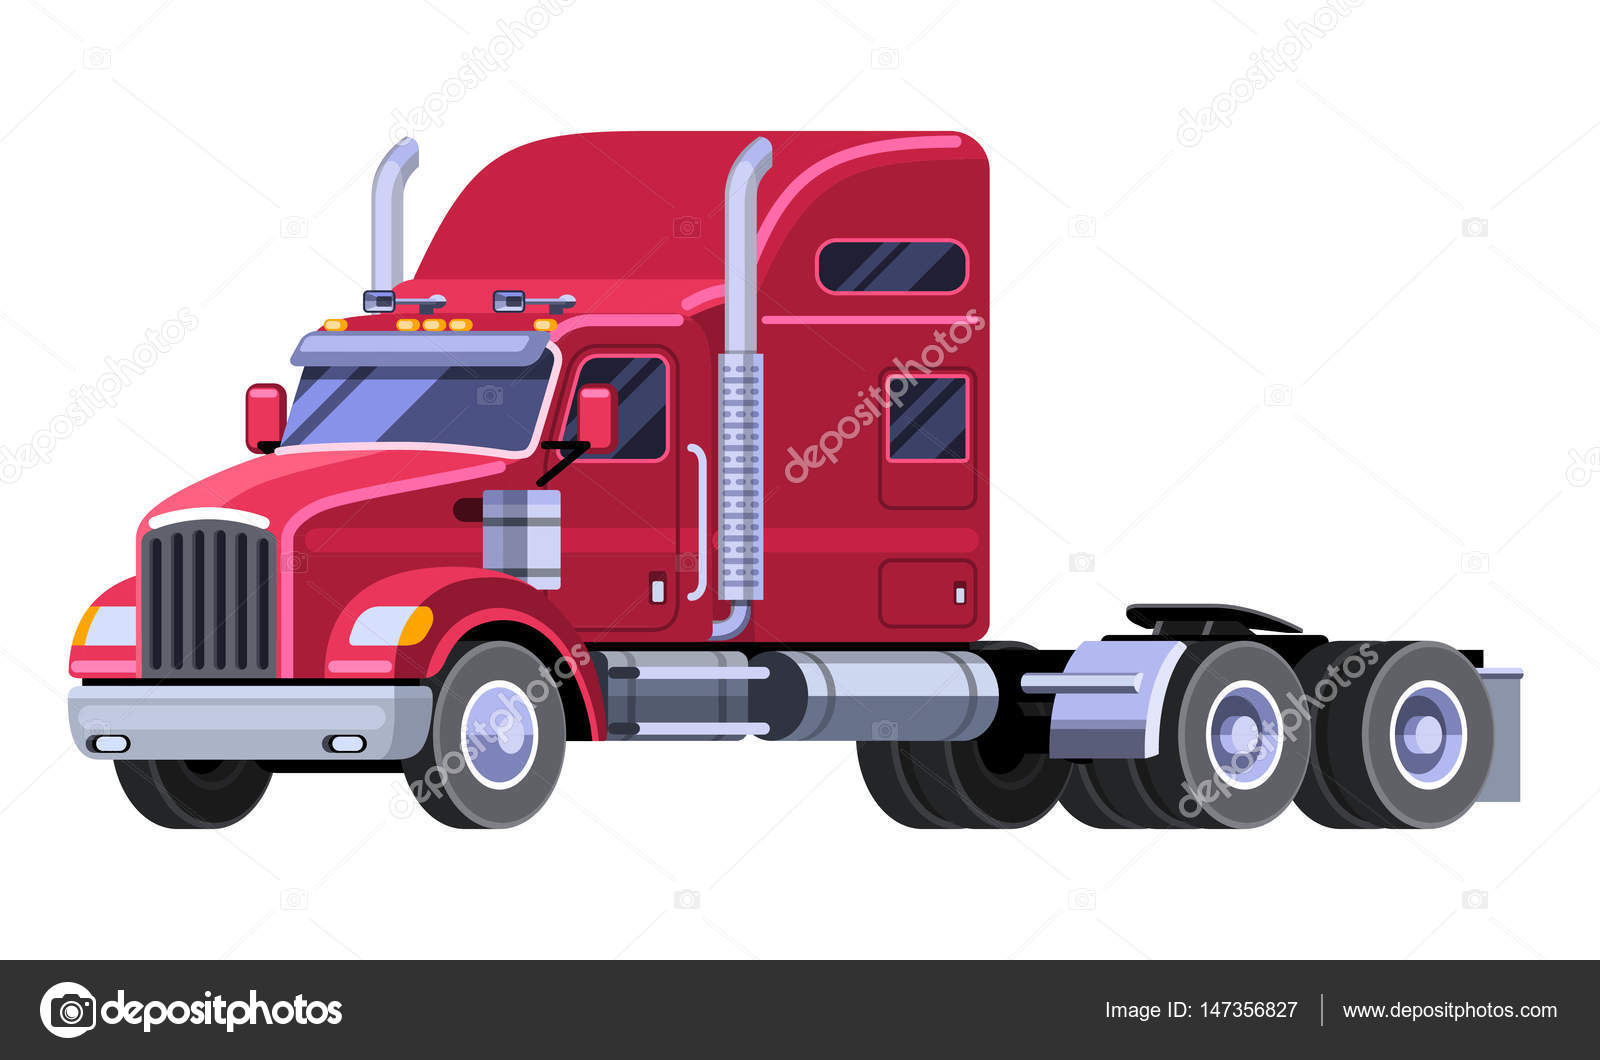 1600x1060 Classic Tractor Truck With Sleeper Cab And Fifth Wheel. Simple